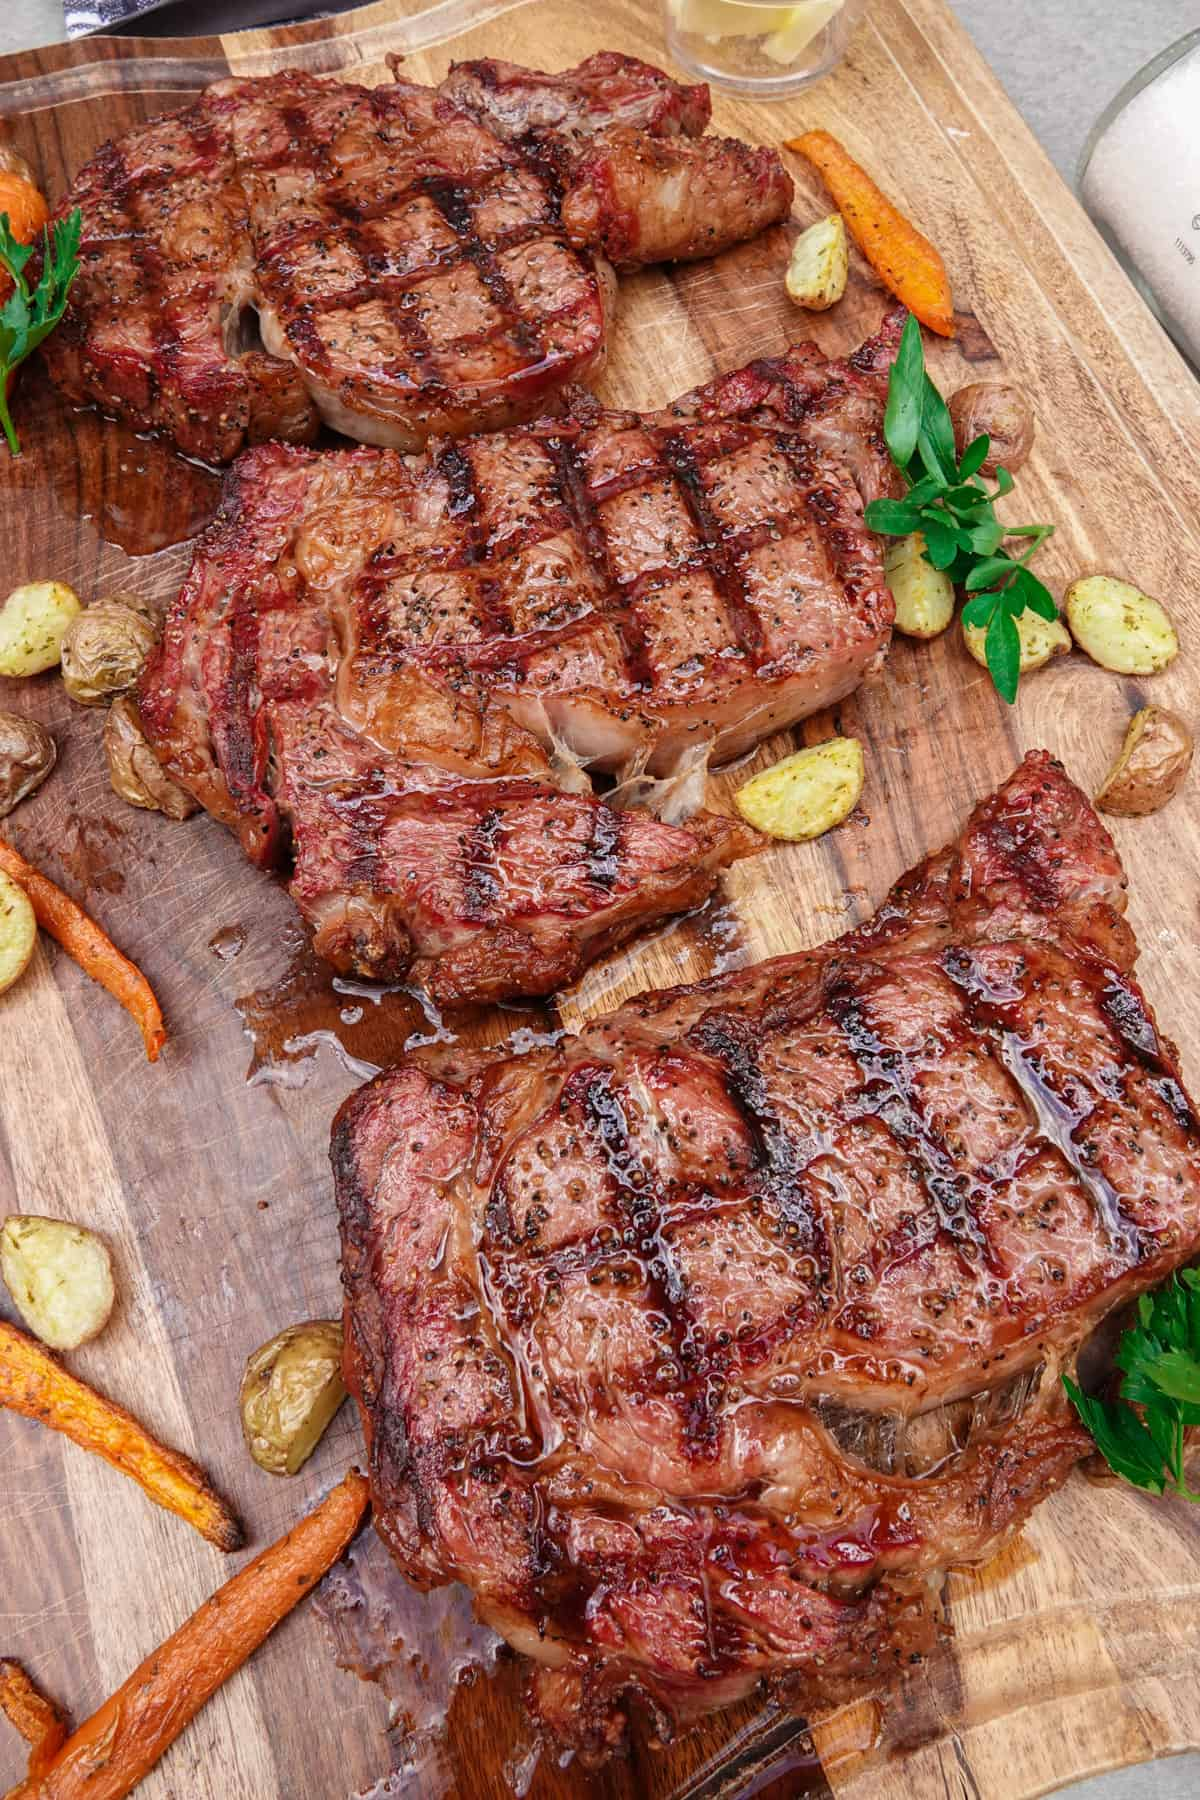 Three cooked ribeye steaks cooked on cutting board